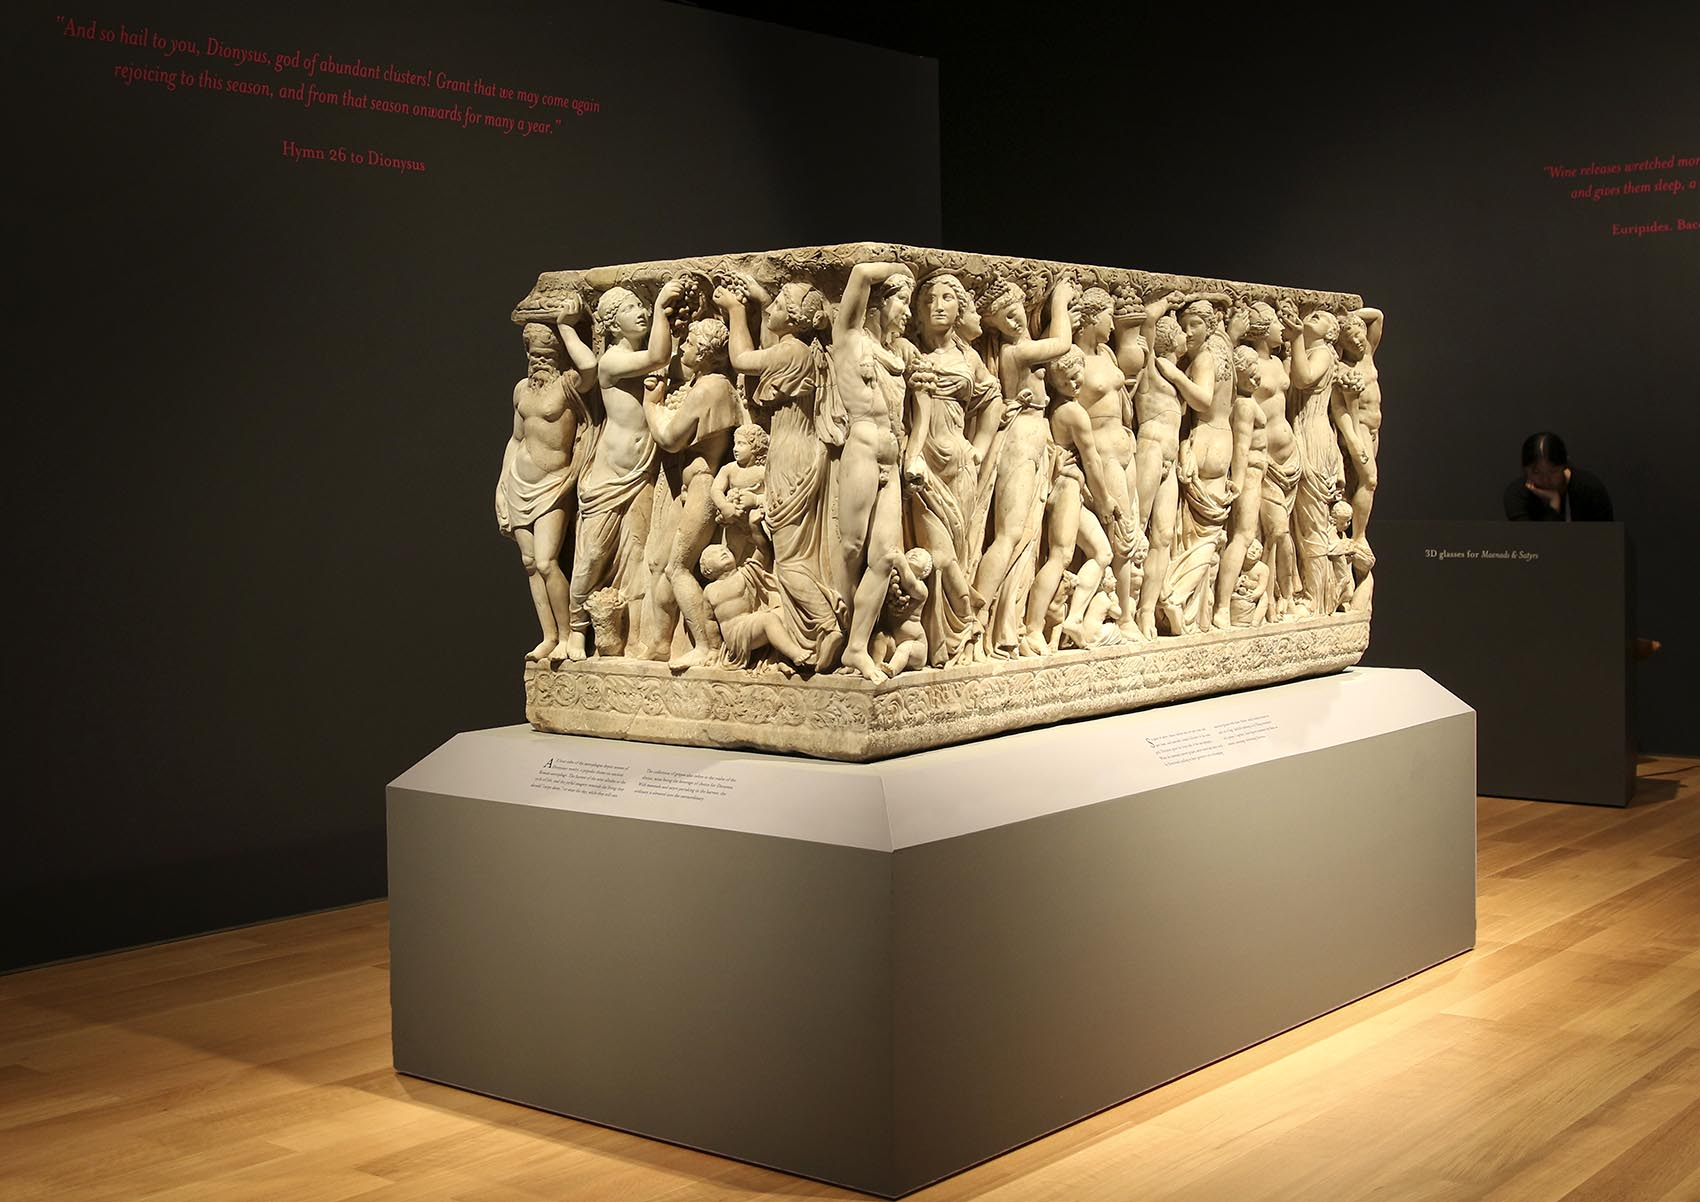 The Farnese Sarcophagus, which has been sitting, almost hidden, in the Isabella Stewart Gardner Museum's courtyard, is on display in a new exhibit. (Courtesy Sarah Whitling/Isabella Stewart Gardner Museum)